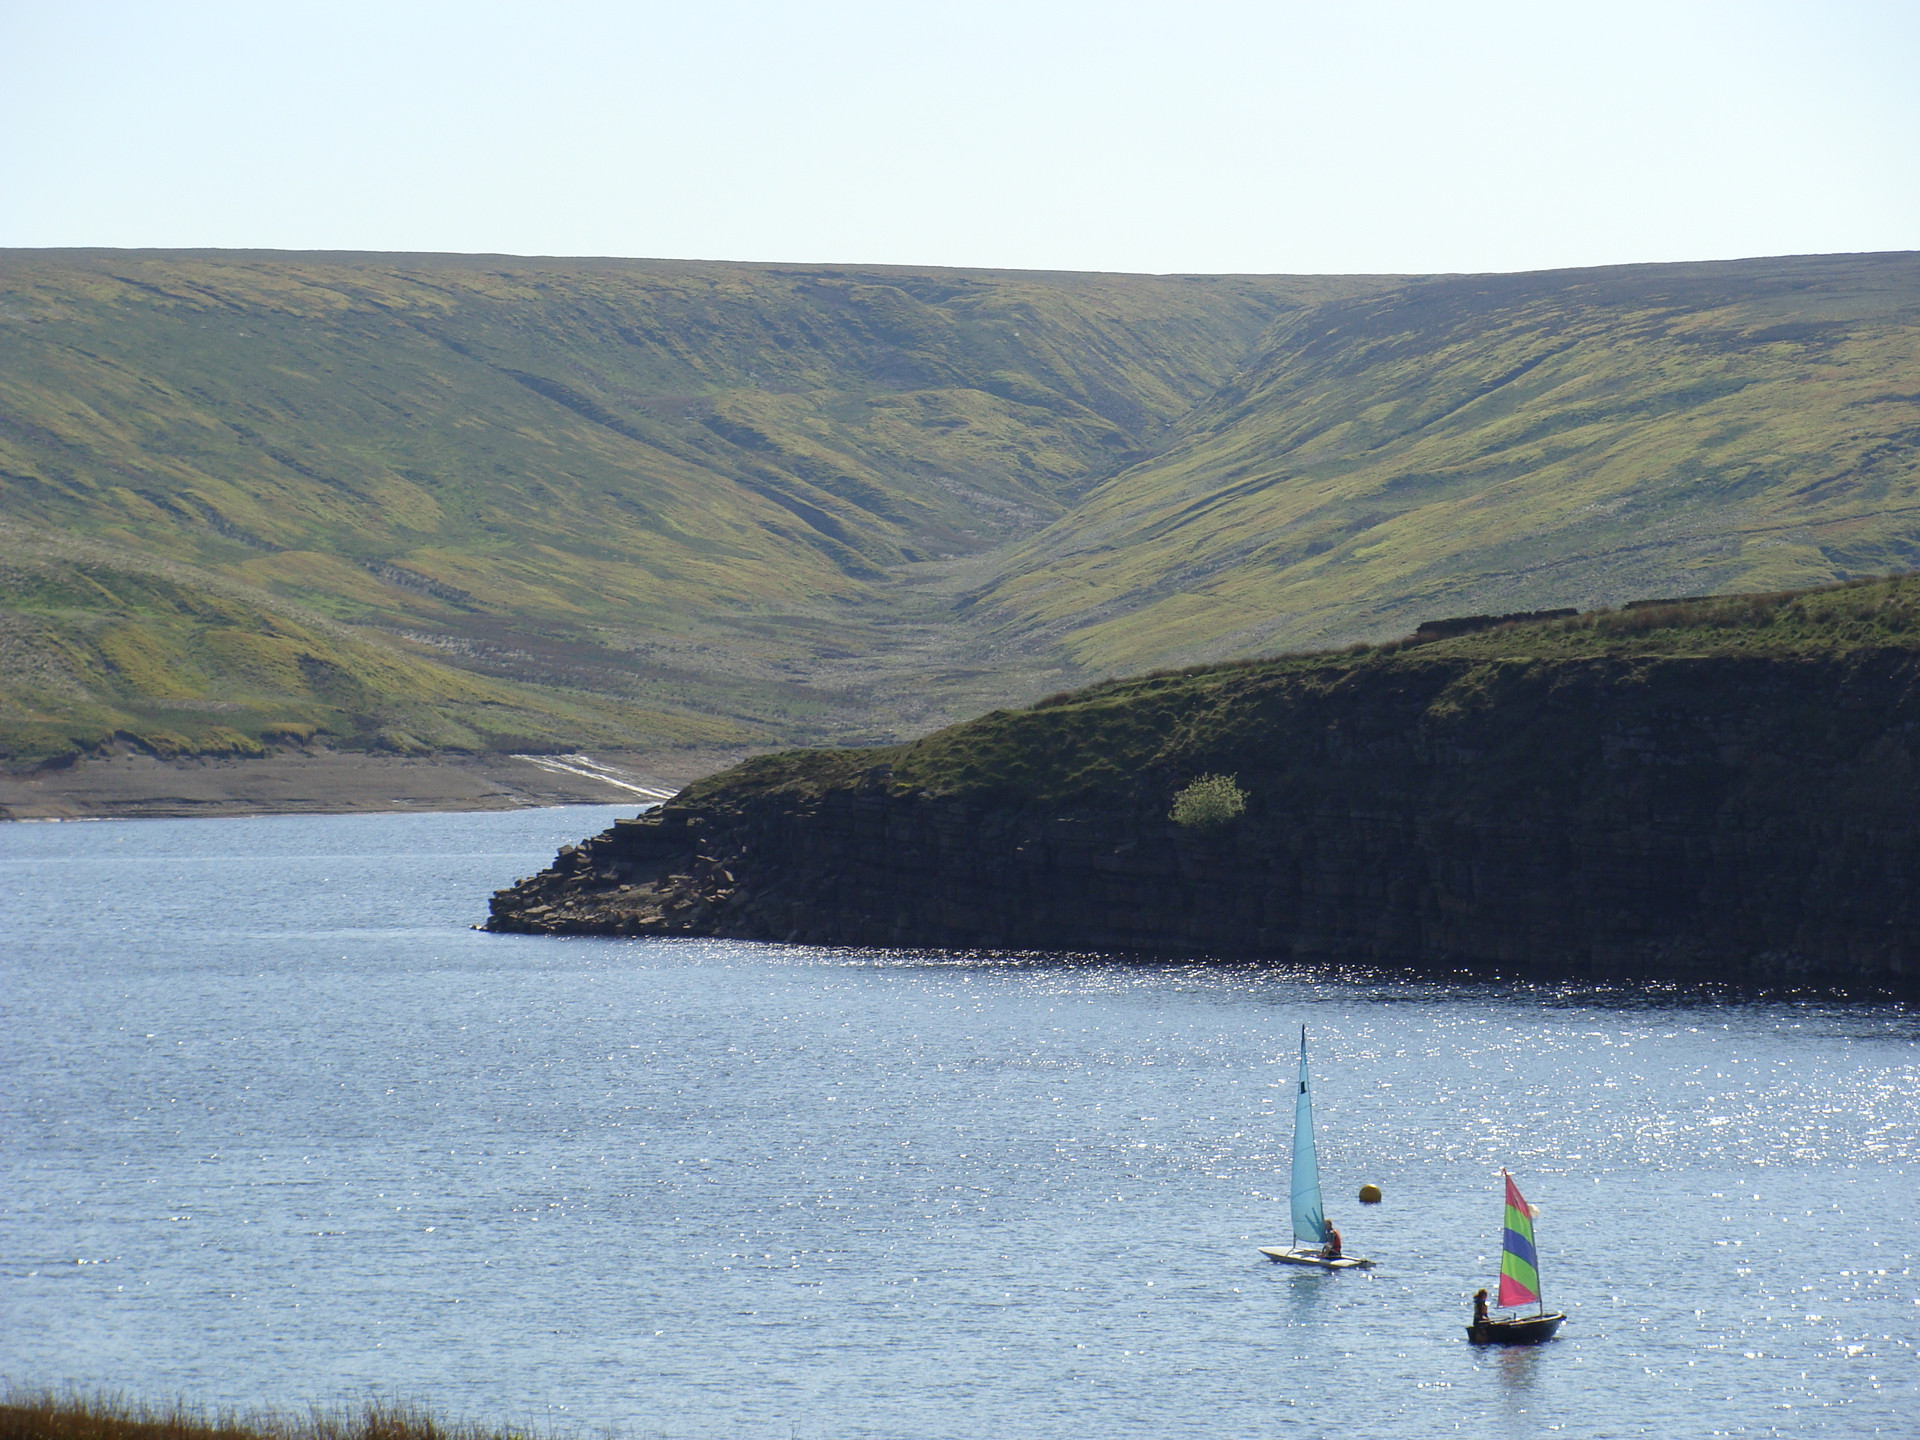 Sailing boats on Winscar Reservoir